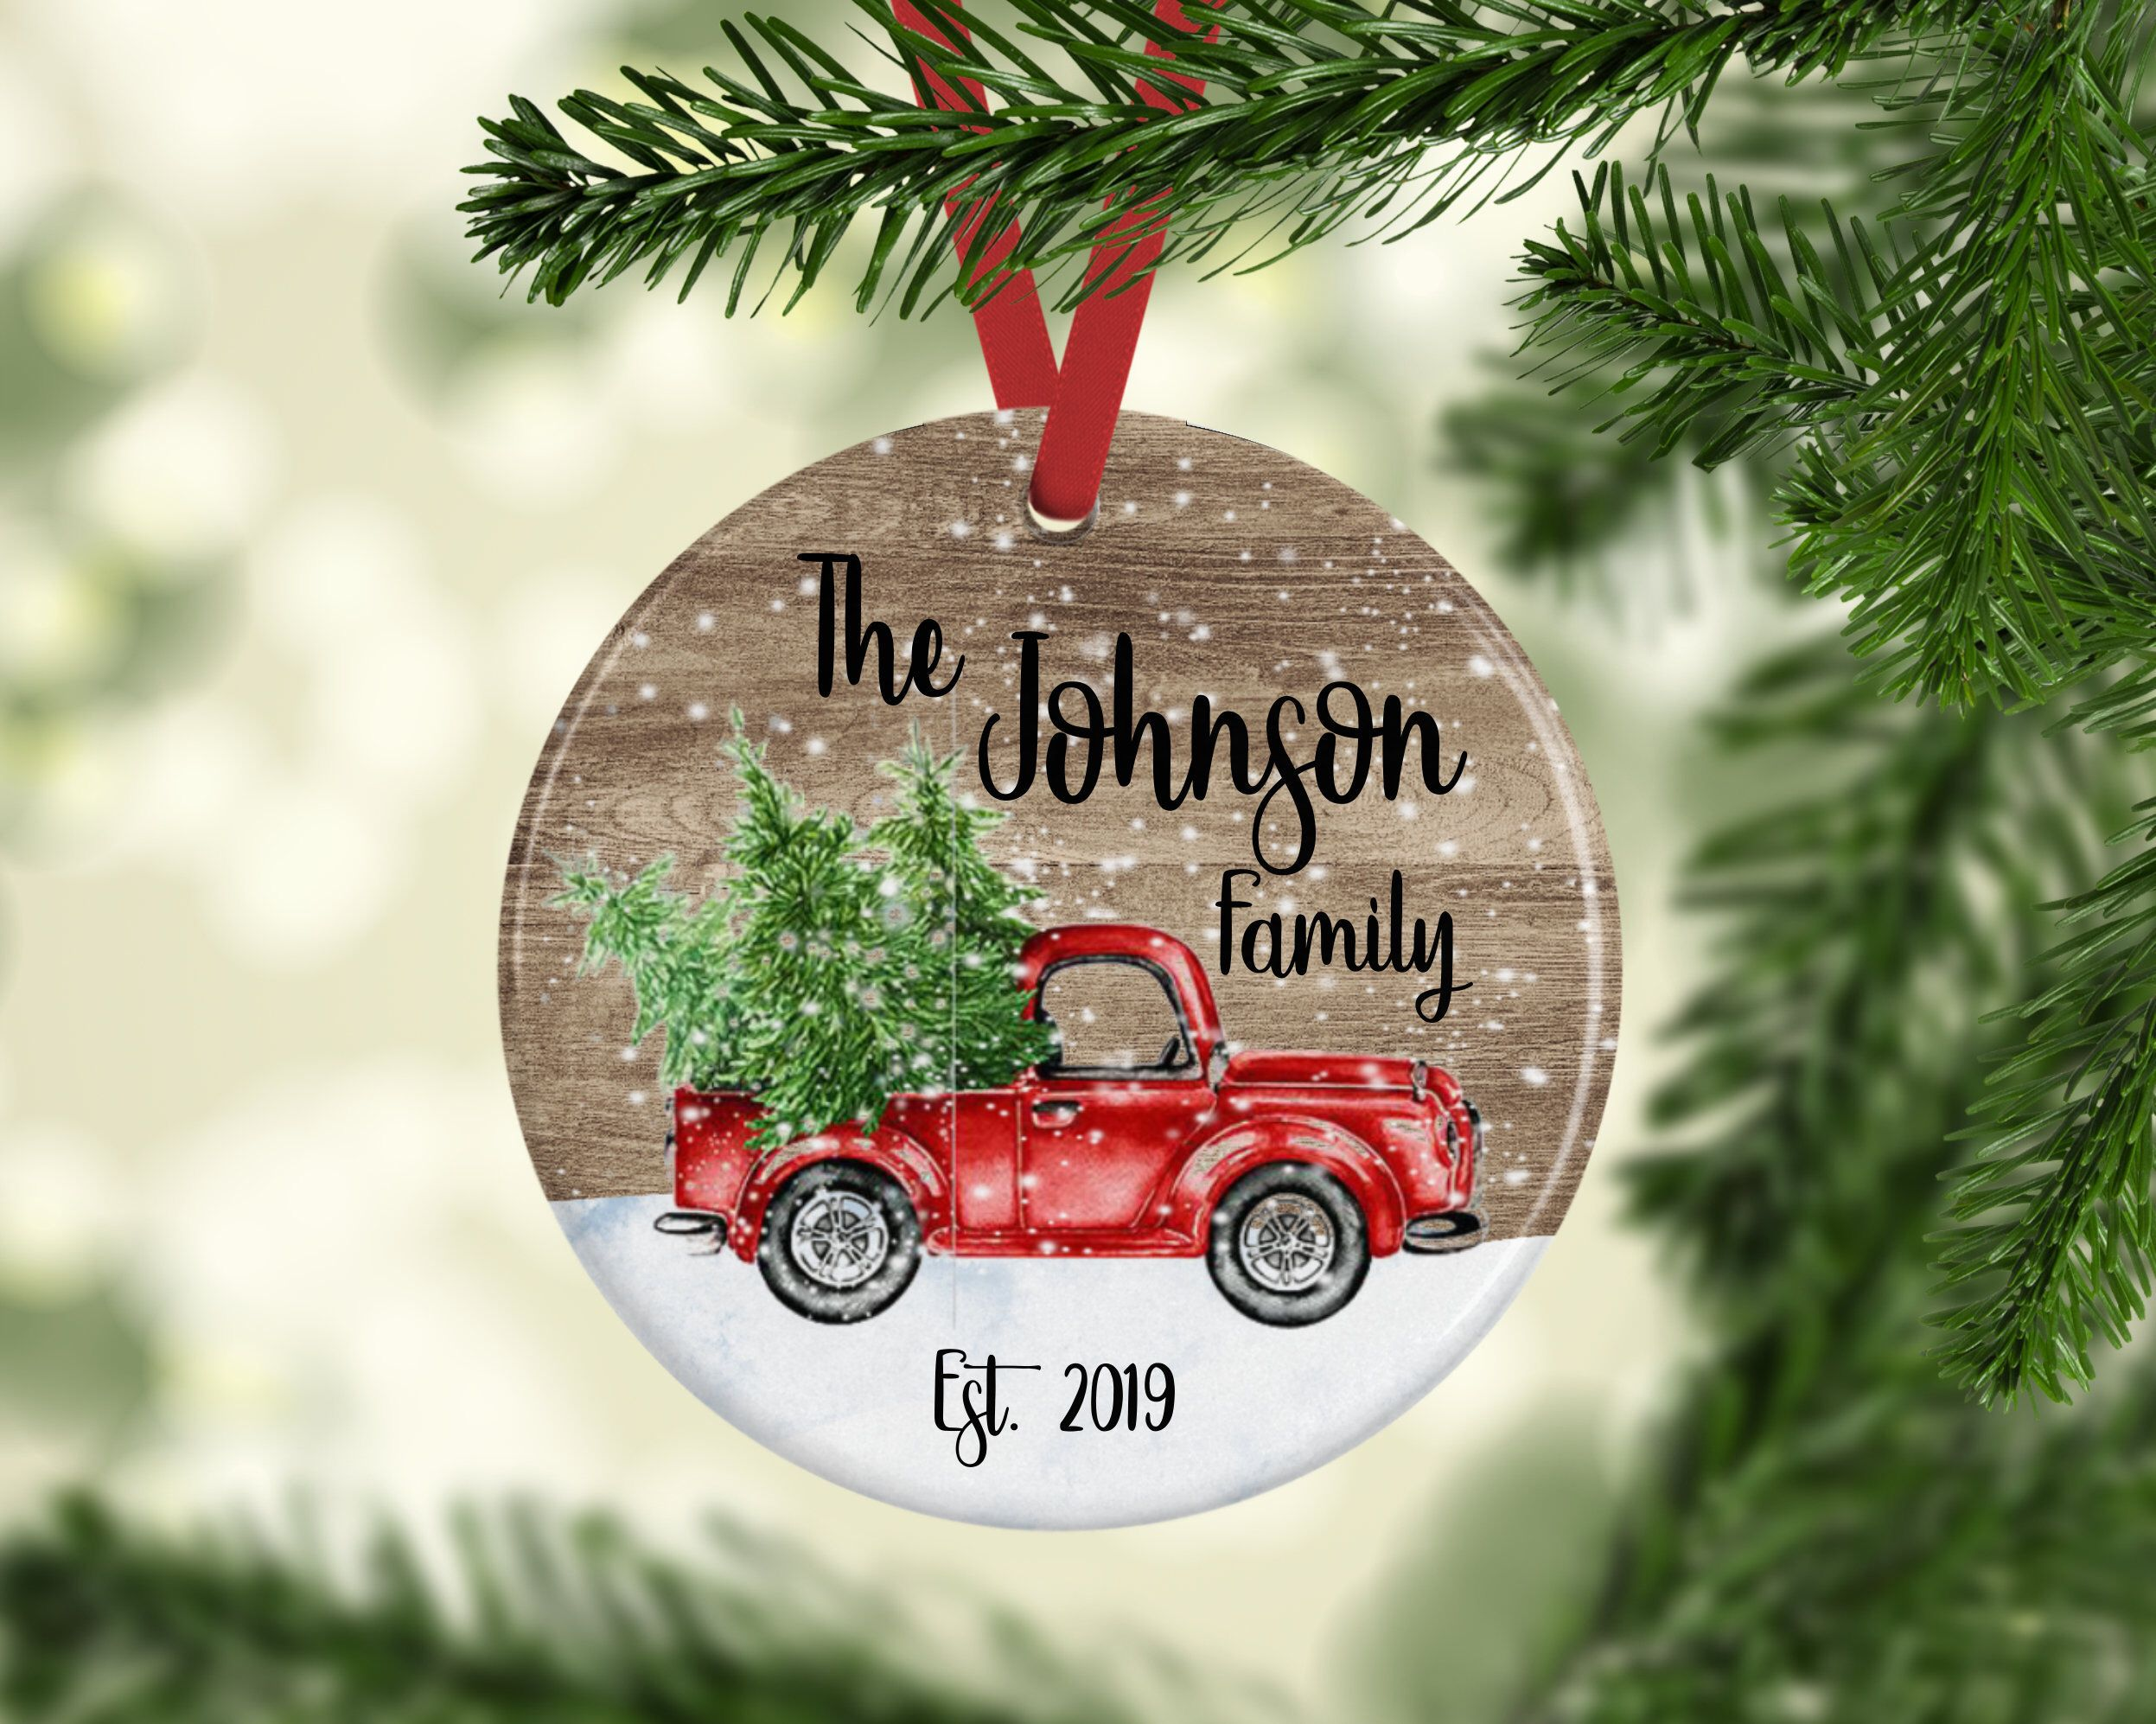 Personalized Christmas Ornament Family Ornament Wood Etsy Personalized Christmas Ornaments Family Personalized Christmas Ornaments Christmas Ornaments